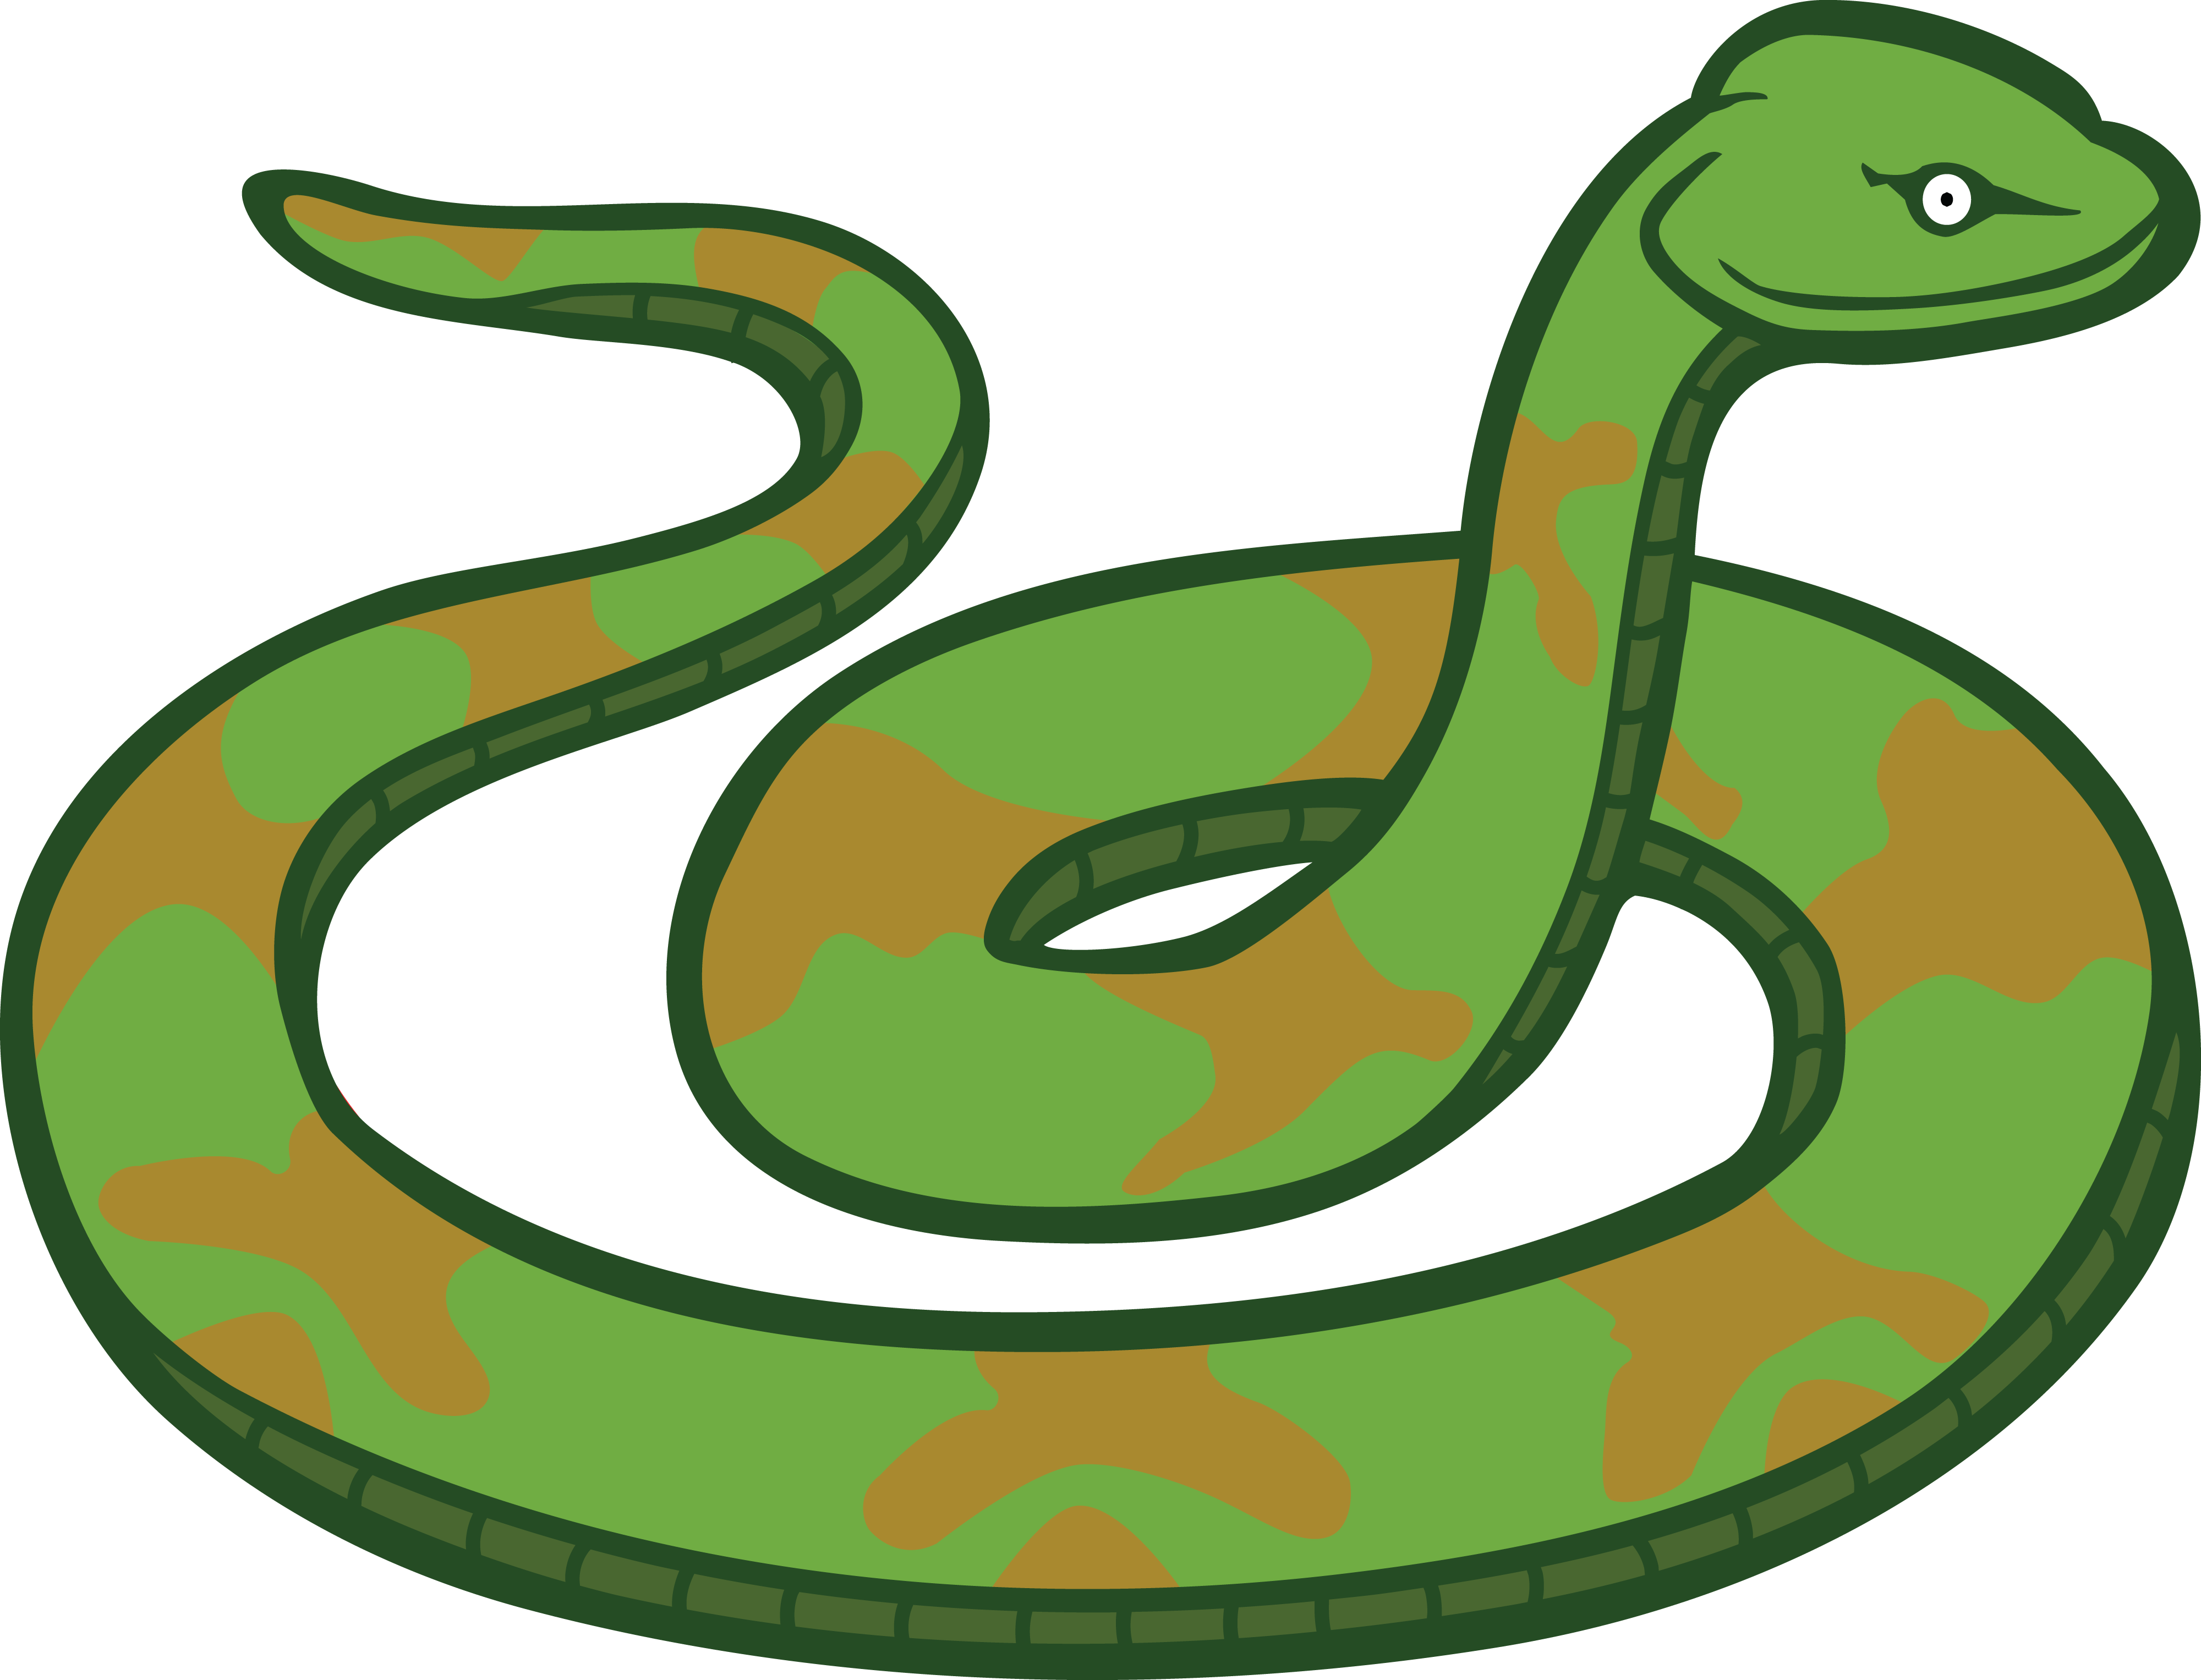 4000x3054 Free Clipart Of A Snake